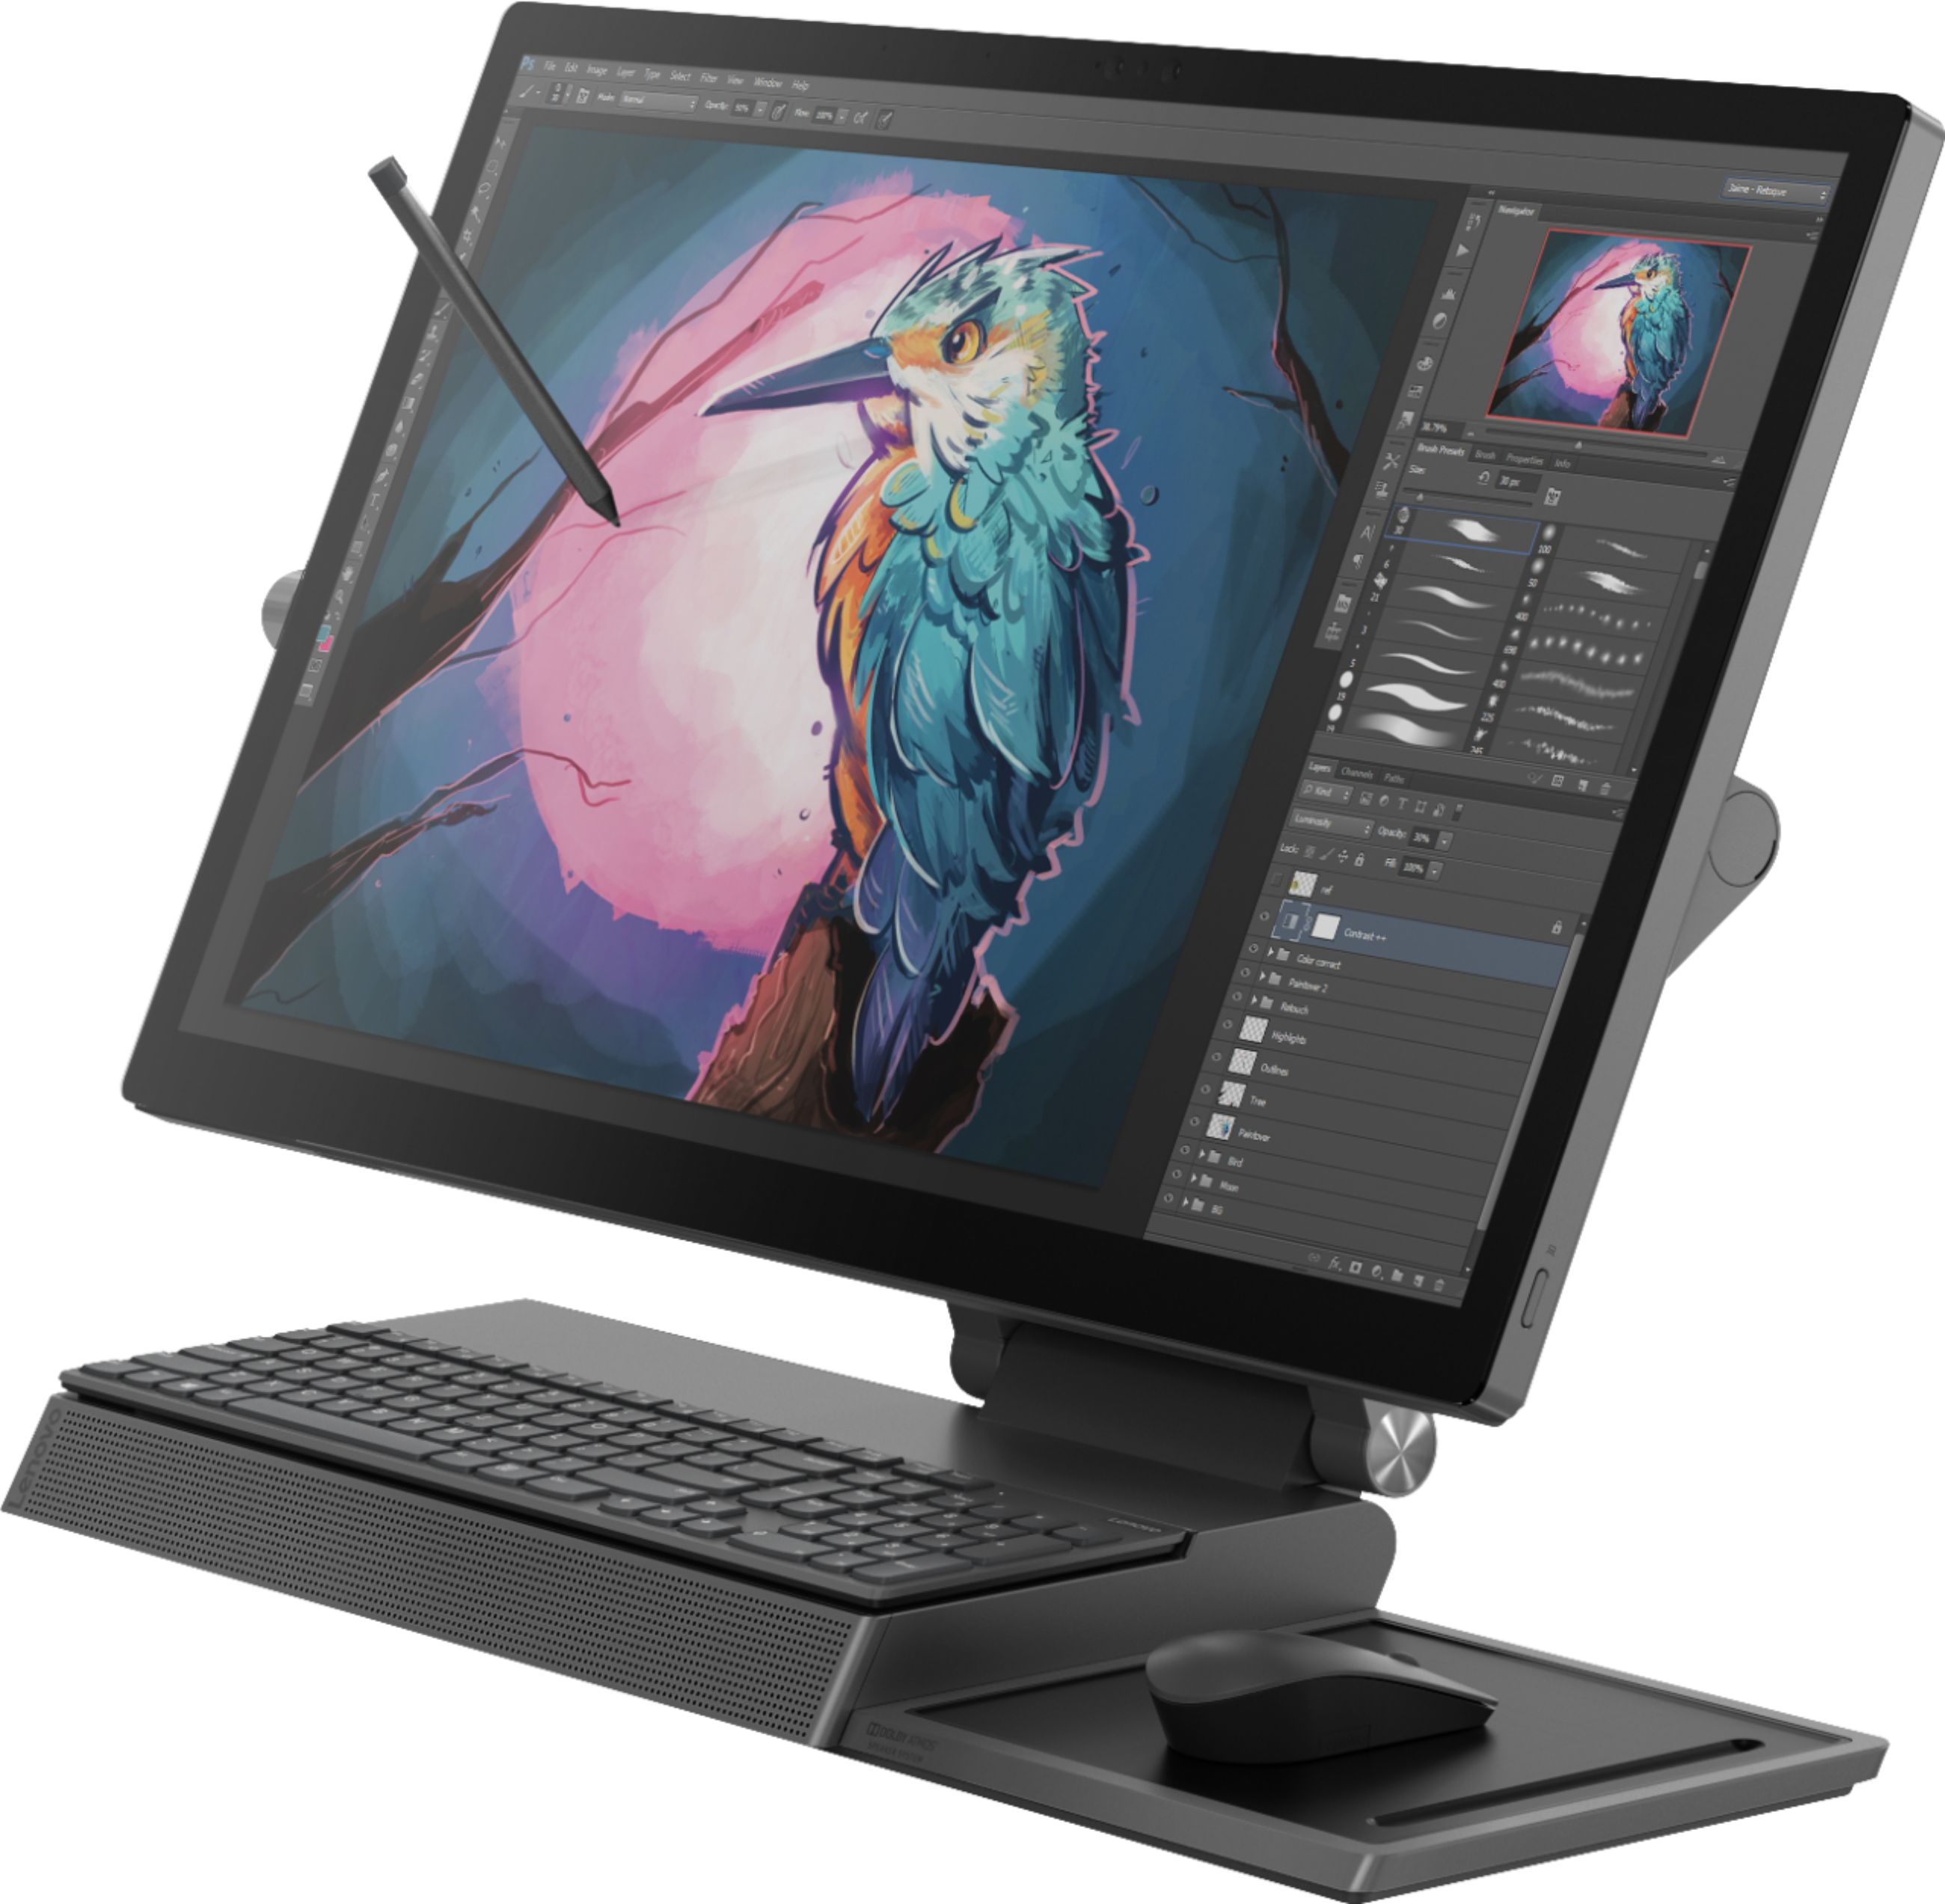 """Left Zoom. Lenovo - Yoga A940-27ICB 27"""" Touch-Screen All-In-One - Intel Core i7 - 16GB Memory - 1TB Hard Drive + 256GB Solid State Drive - Gray."""